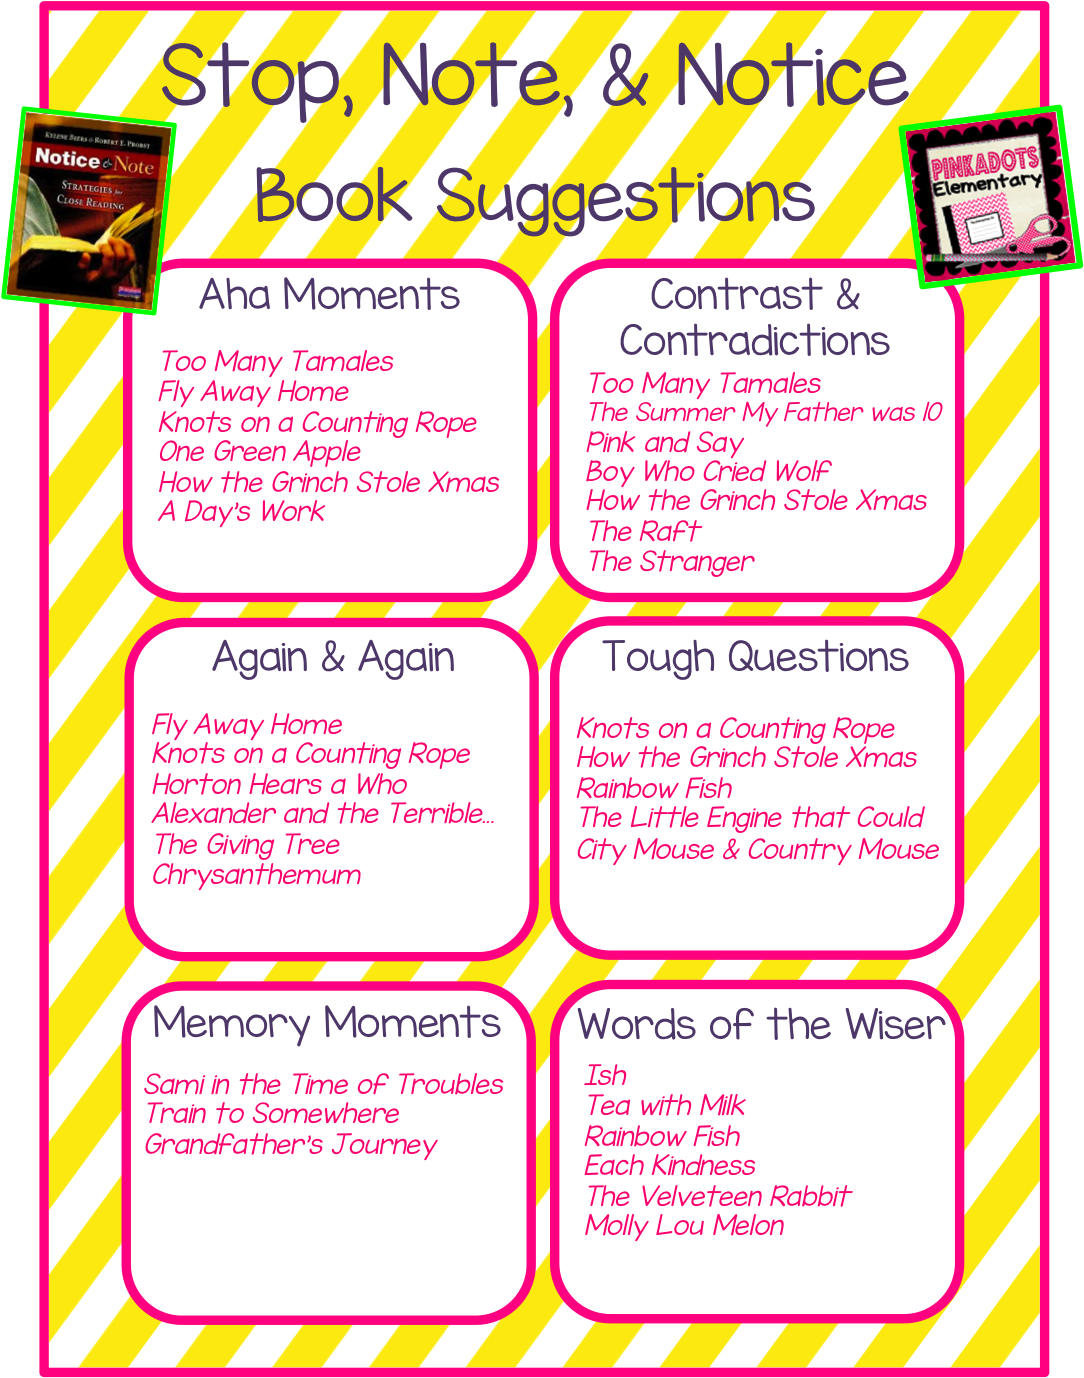 Pinkadots Elementary Stop Note Amp Notice Book Suggestions